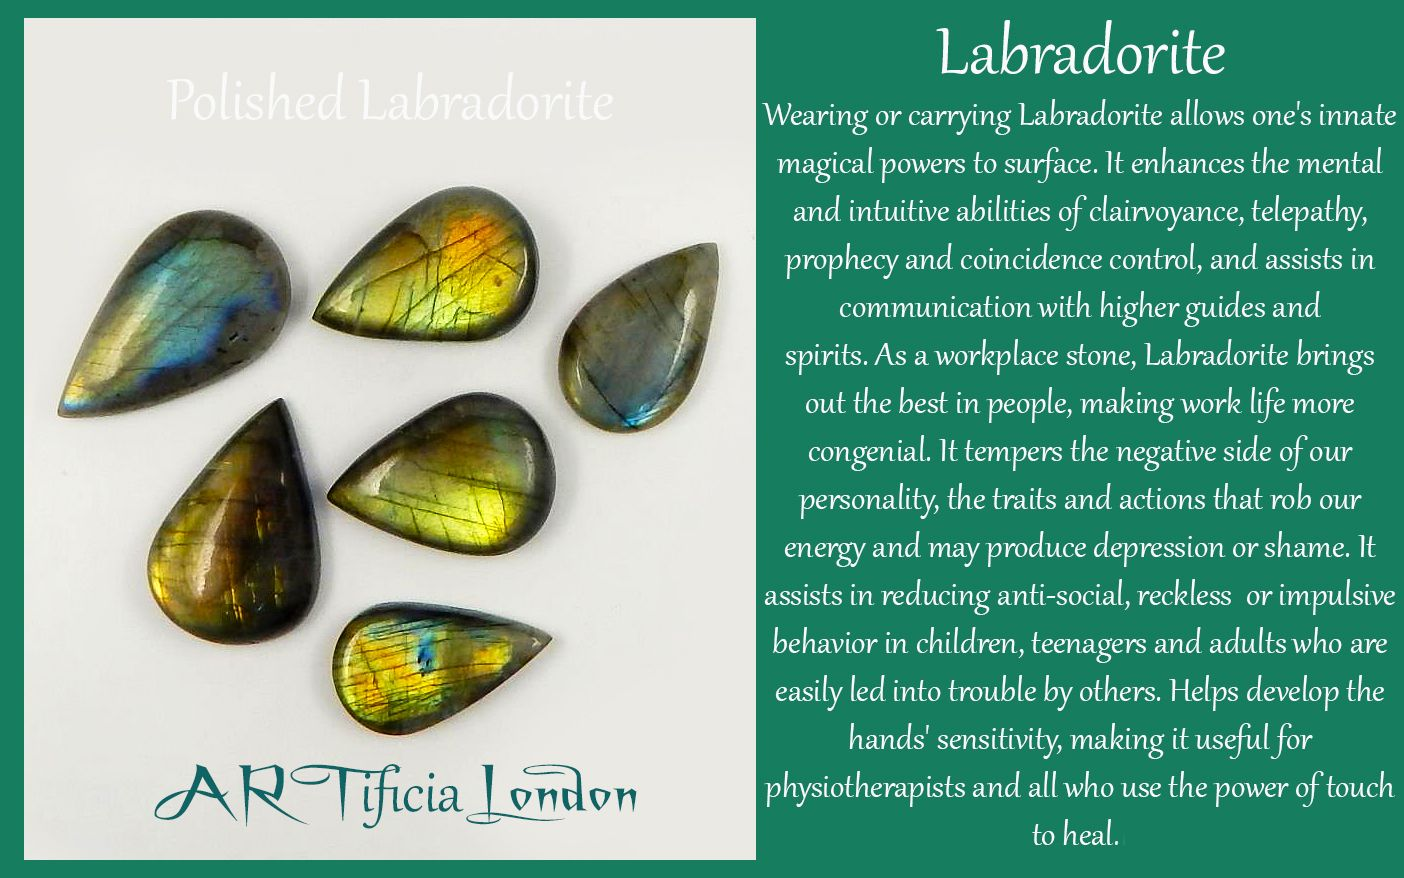 LABRADORITE Crystal Meaning and Uses ARTificiaLondon